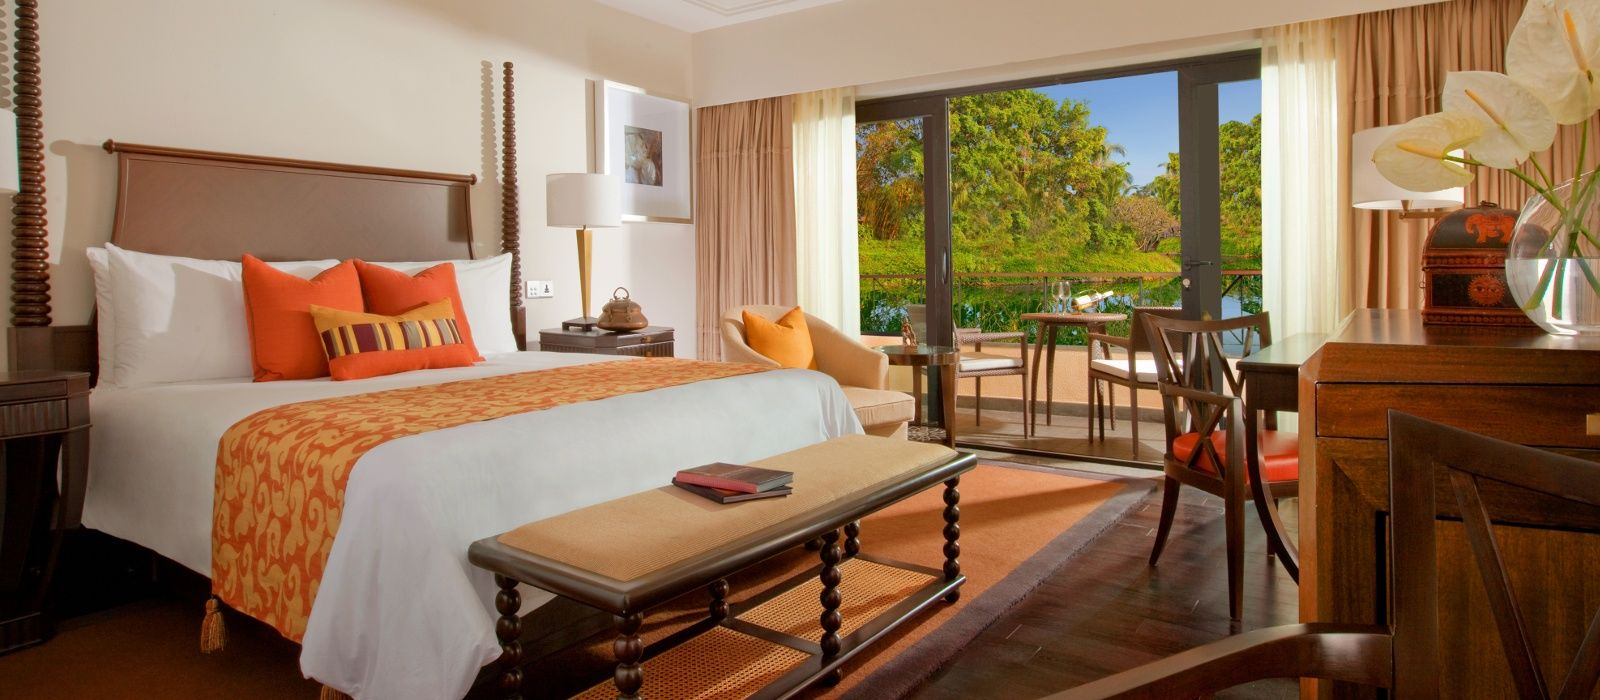 Hotel The Leela Goa Islands & Beaches